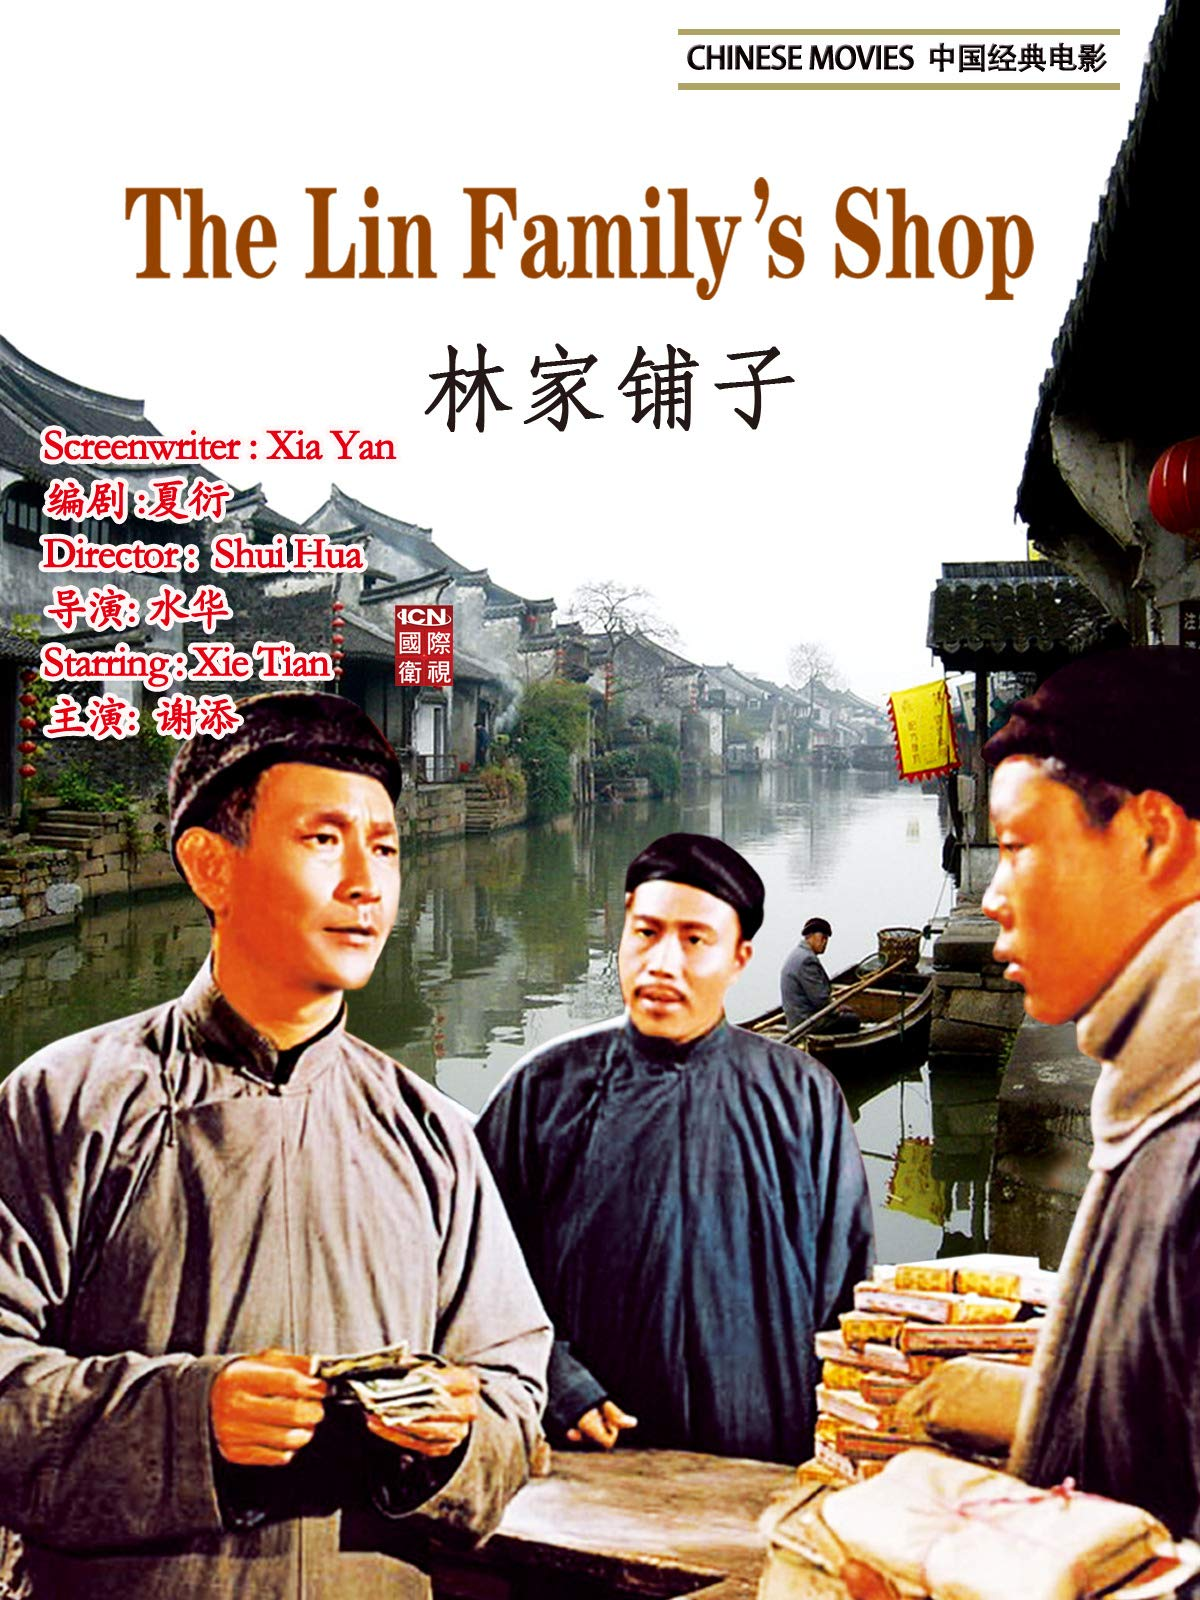 Chinese Movies-The Lin Family's Shop